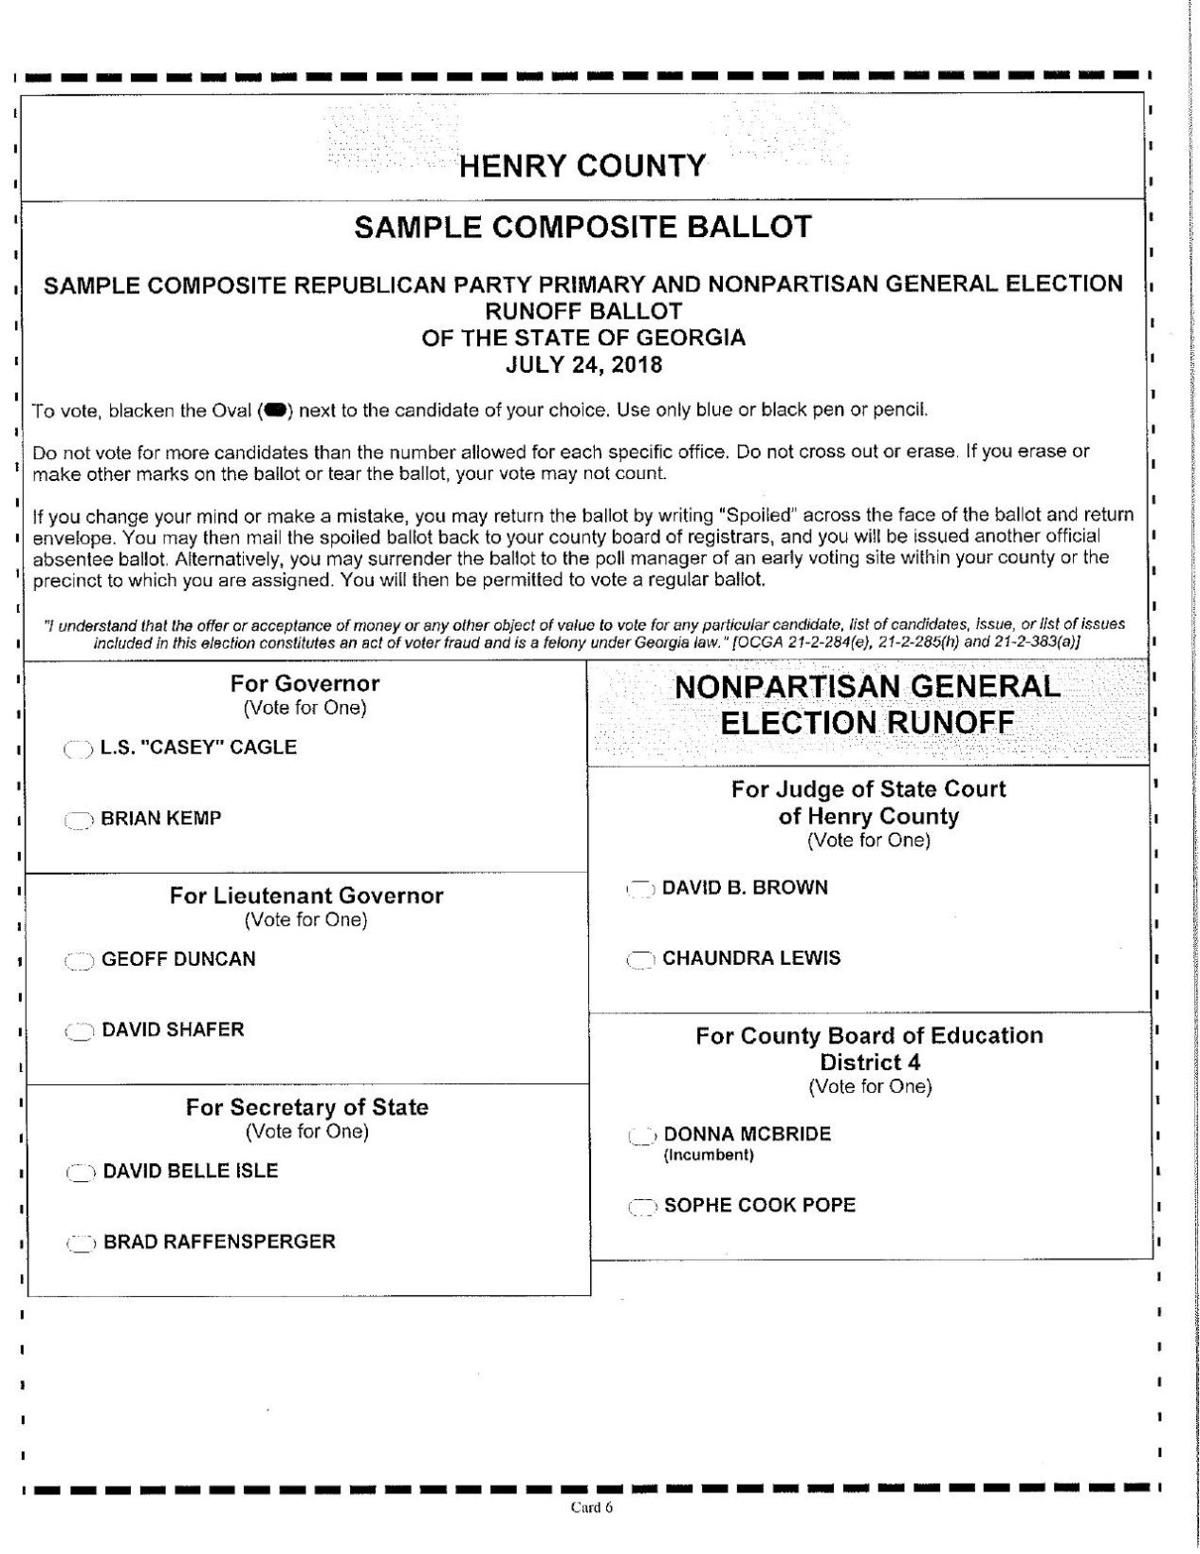 Henry County runoff sample ballots | NeighborNewsOnline ...